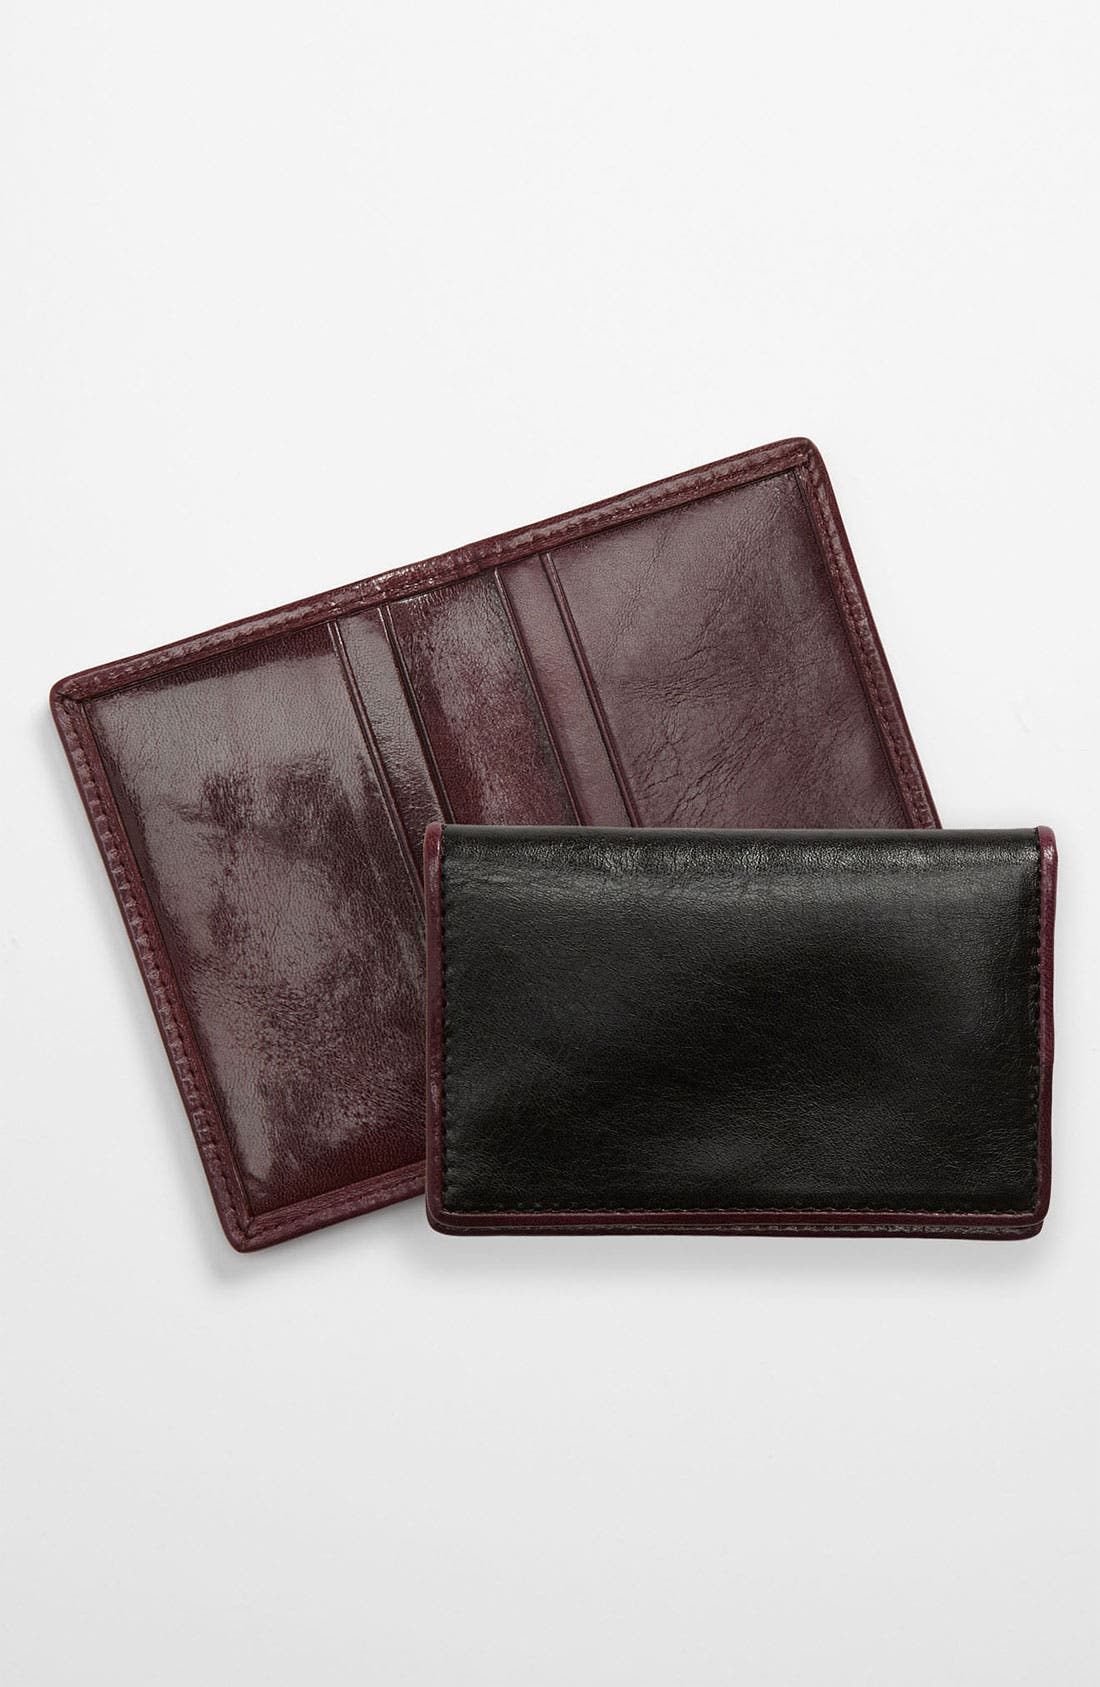 Alternate Image 1 Selected - Bosca 'Small' Card Case